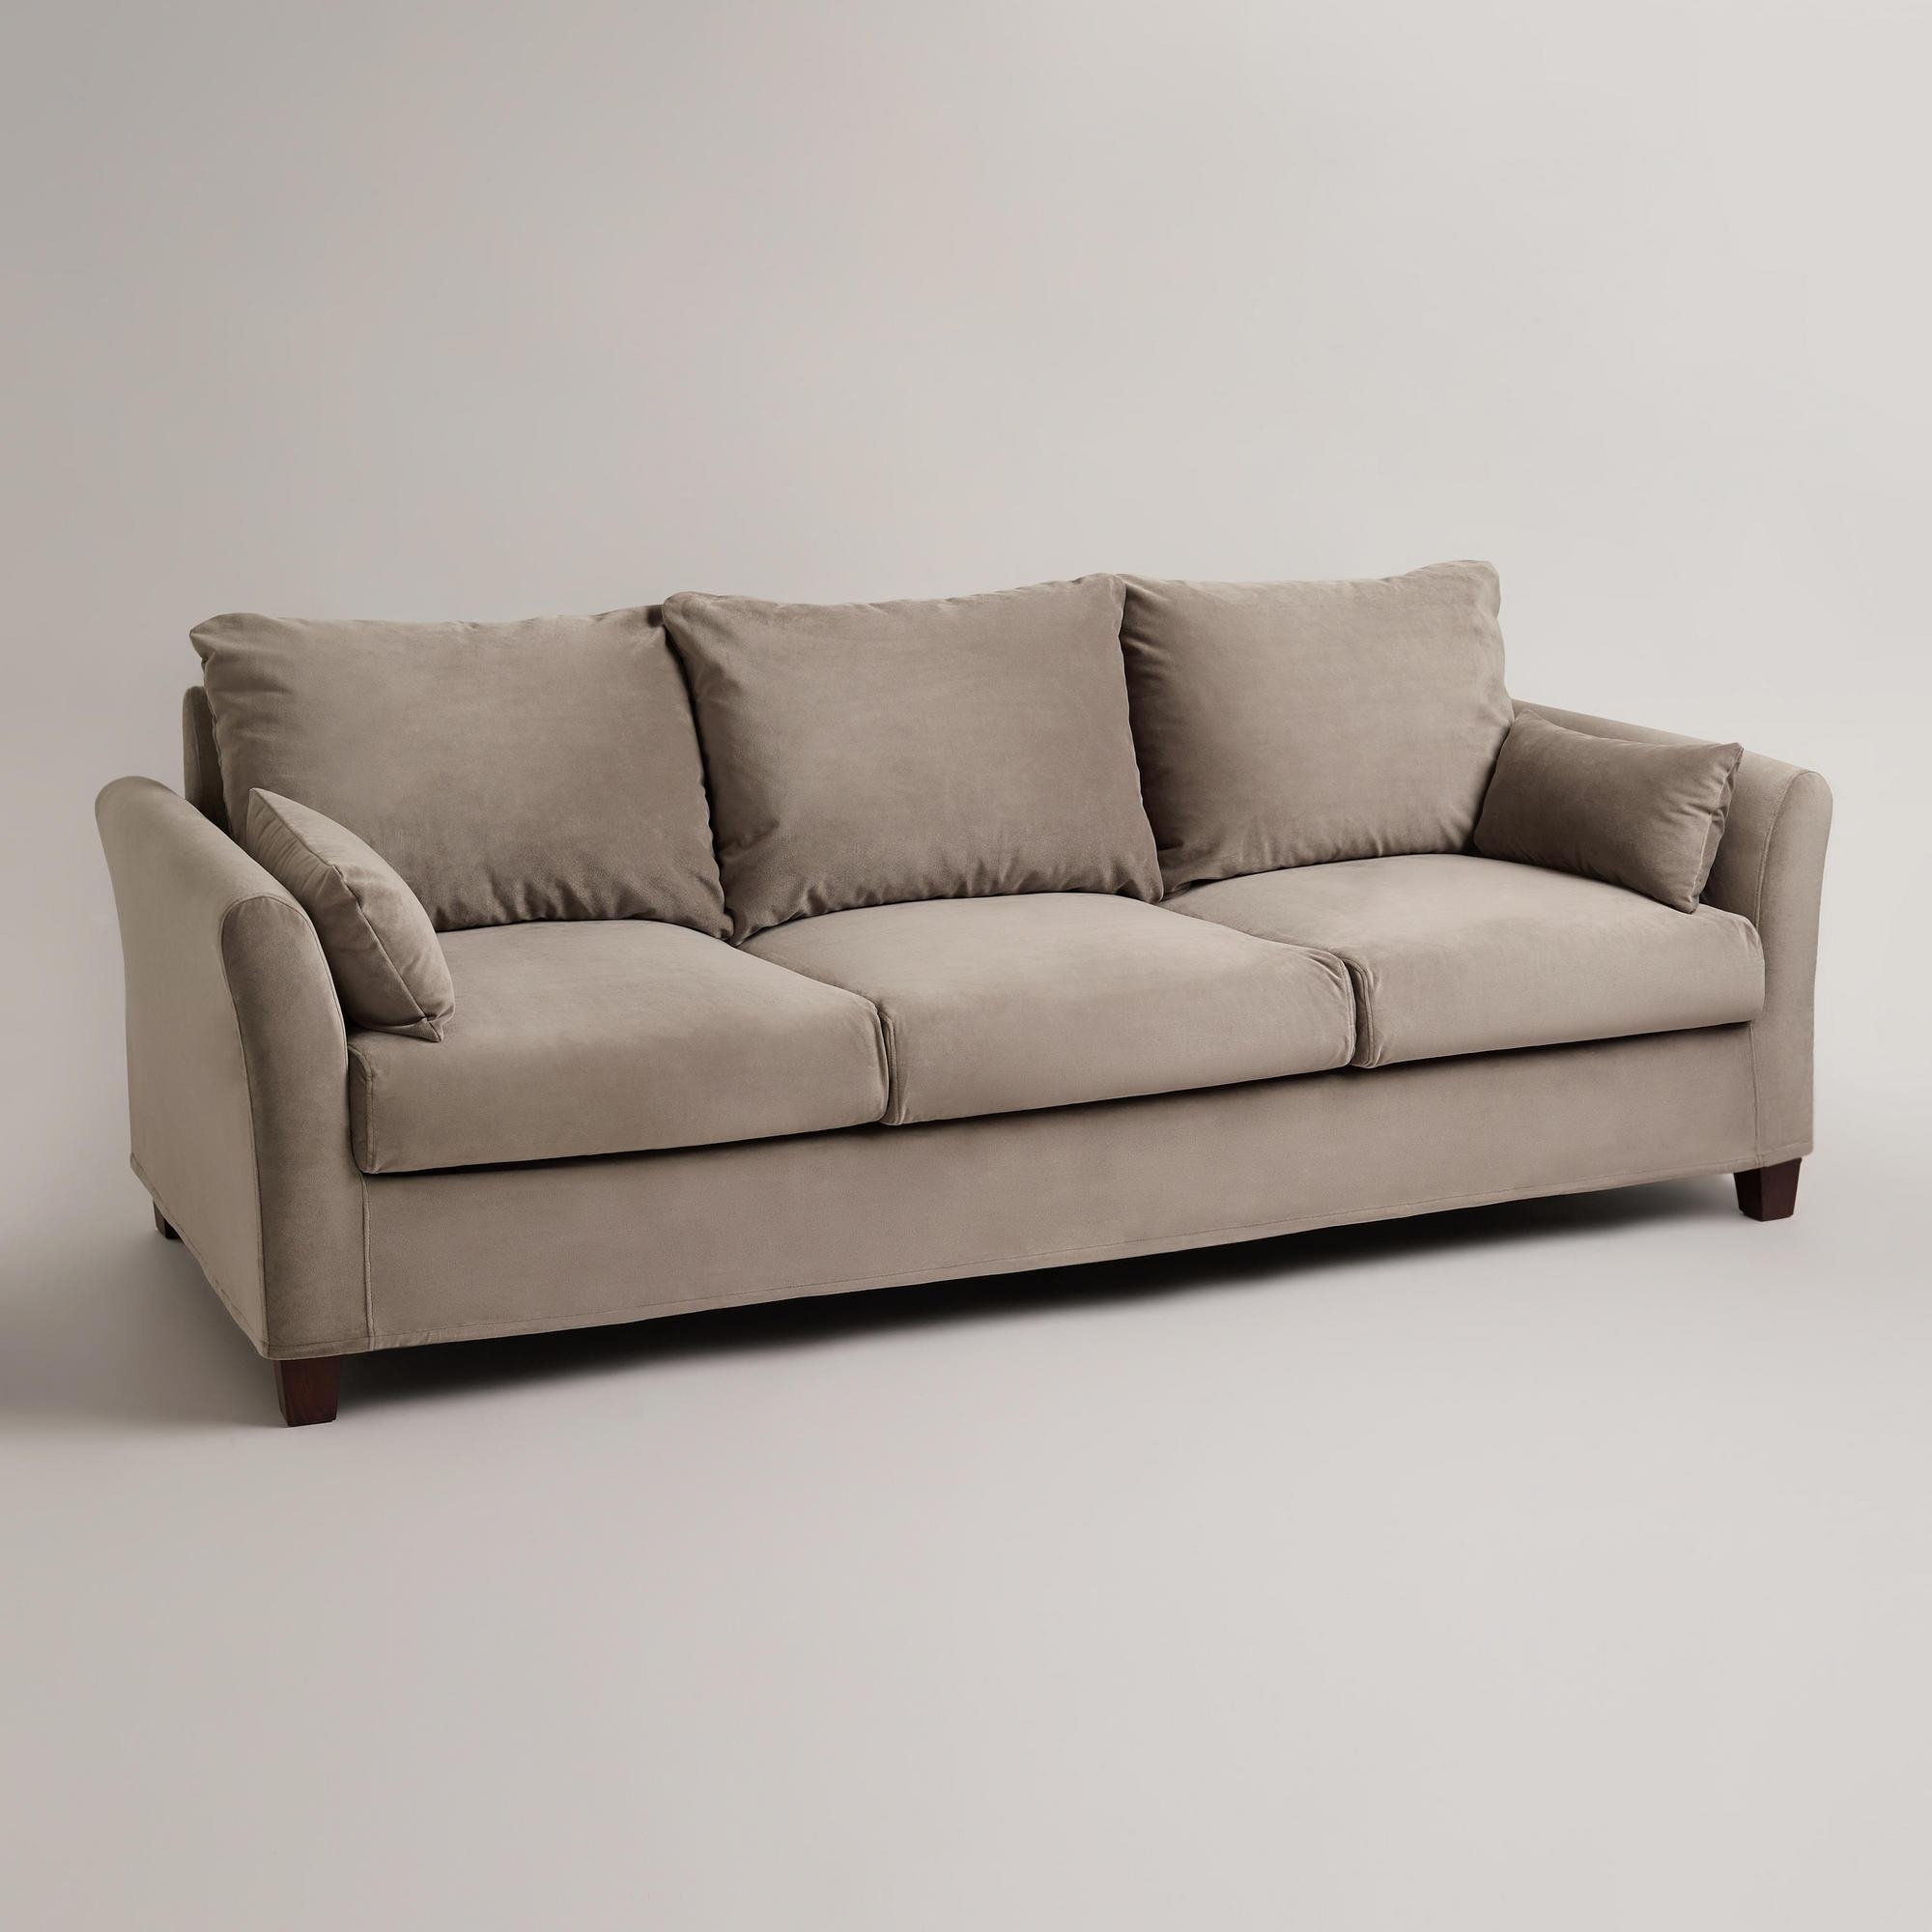 3 Piece Sofa Cover Sets Tags : 50 Remarkable 3 Piece Sofa Covers intended for 3 Piece Sofa Covers